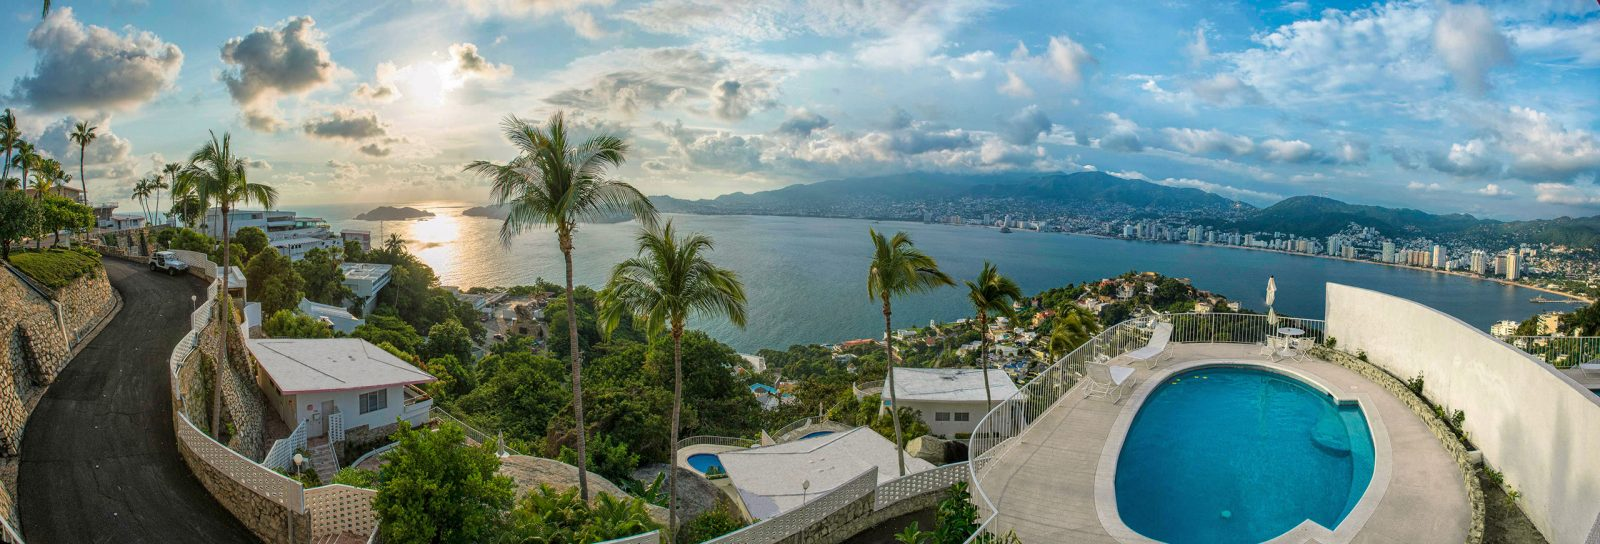 Panoramic view from Las Brisas Acapulco hotel